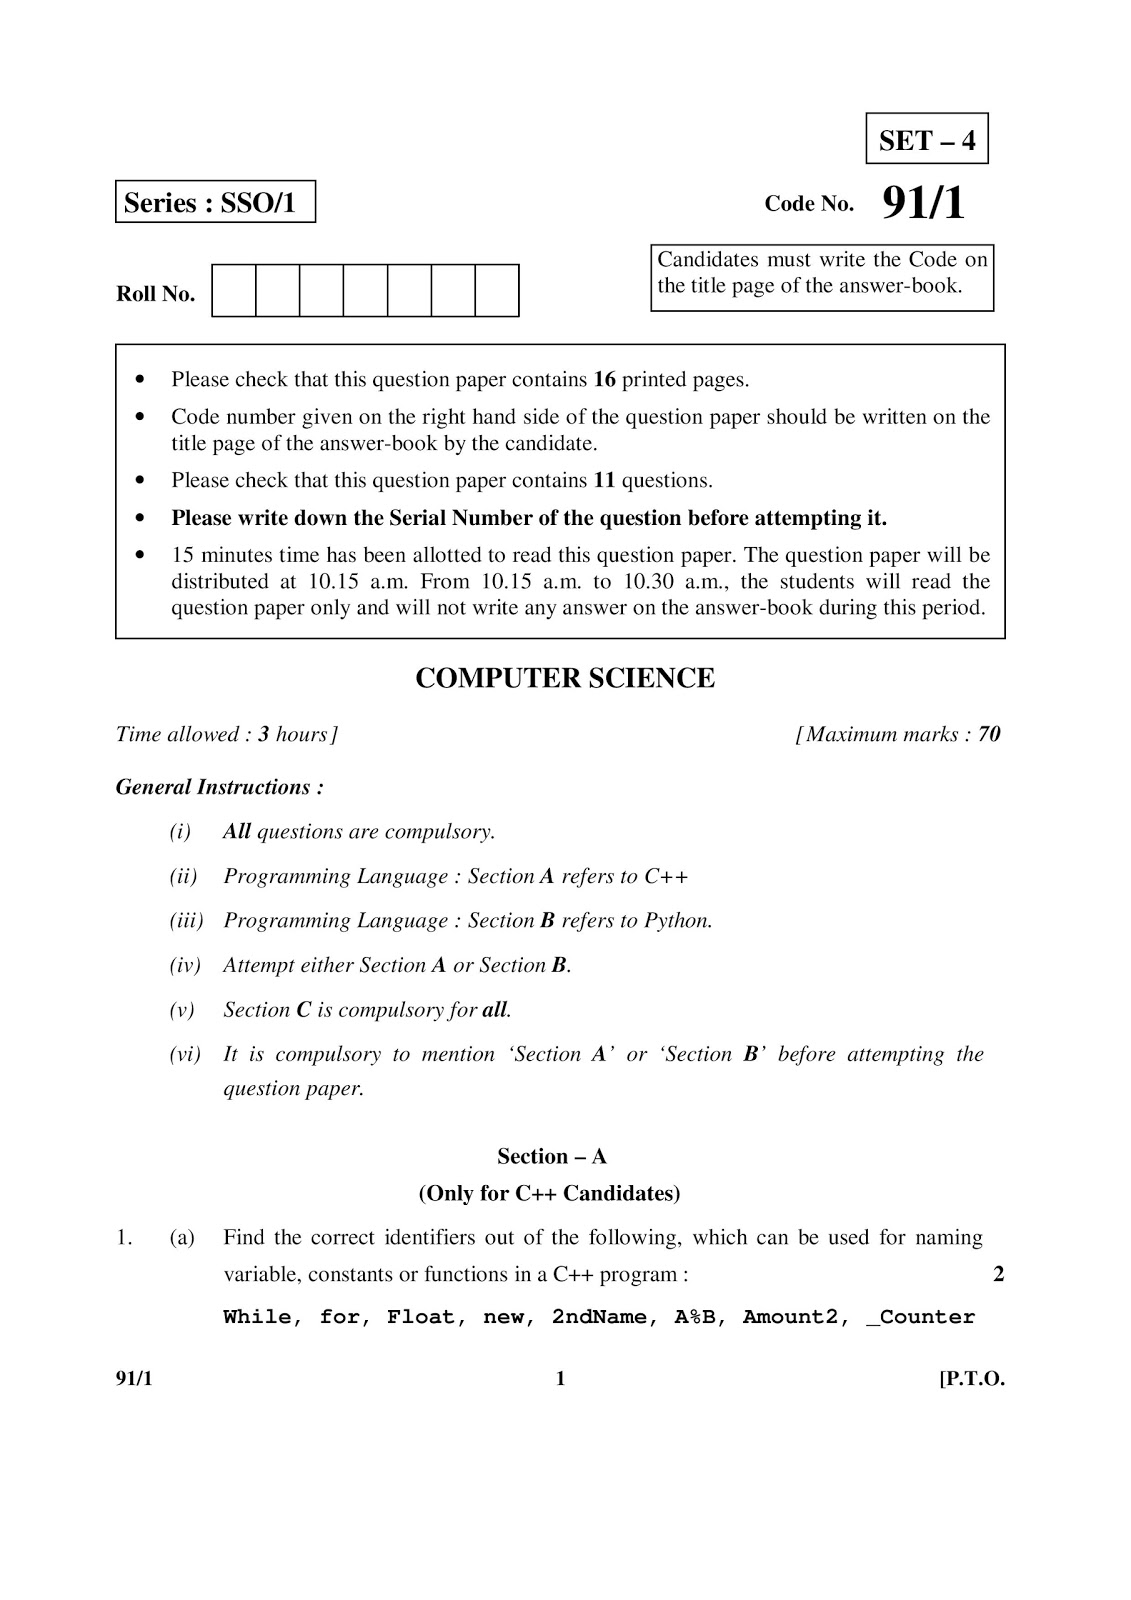 Cbse 2015 computer science class 12 boars question paper set 4 cbse class 12th 2015 computer science question paper malvernweather Image collections